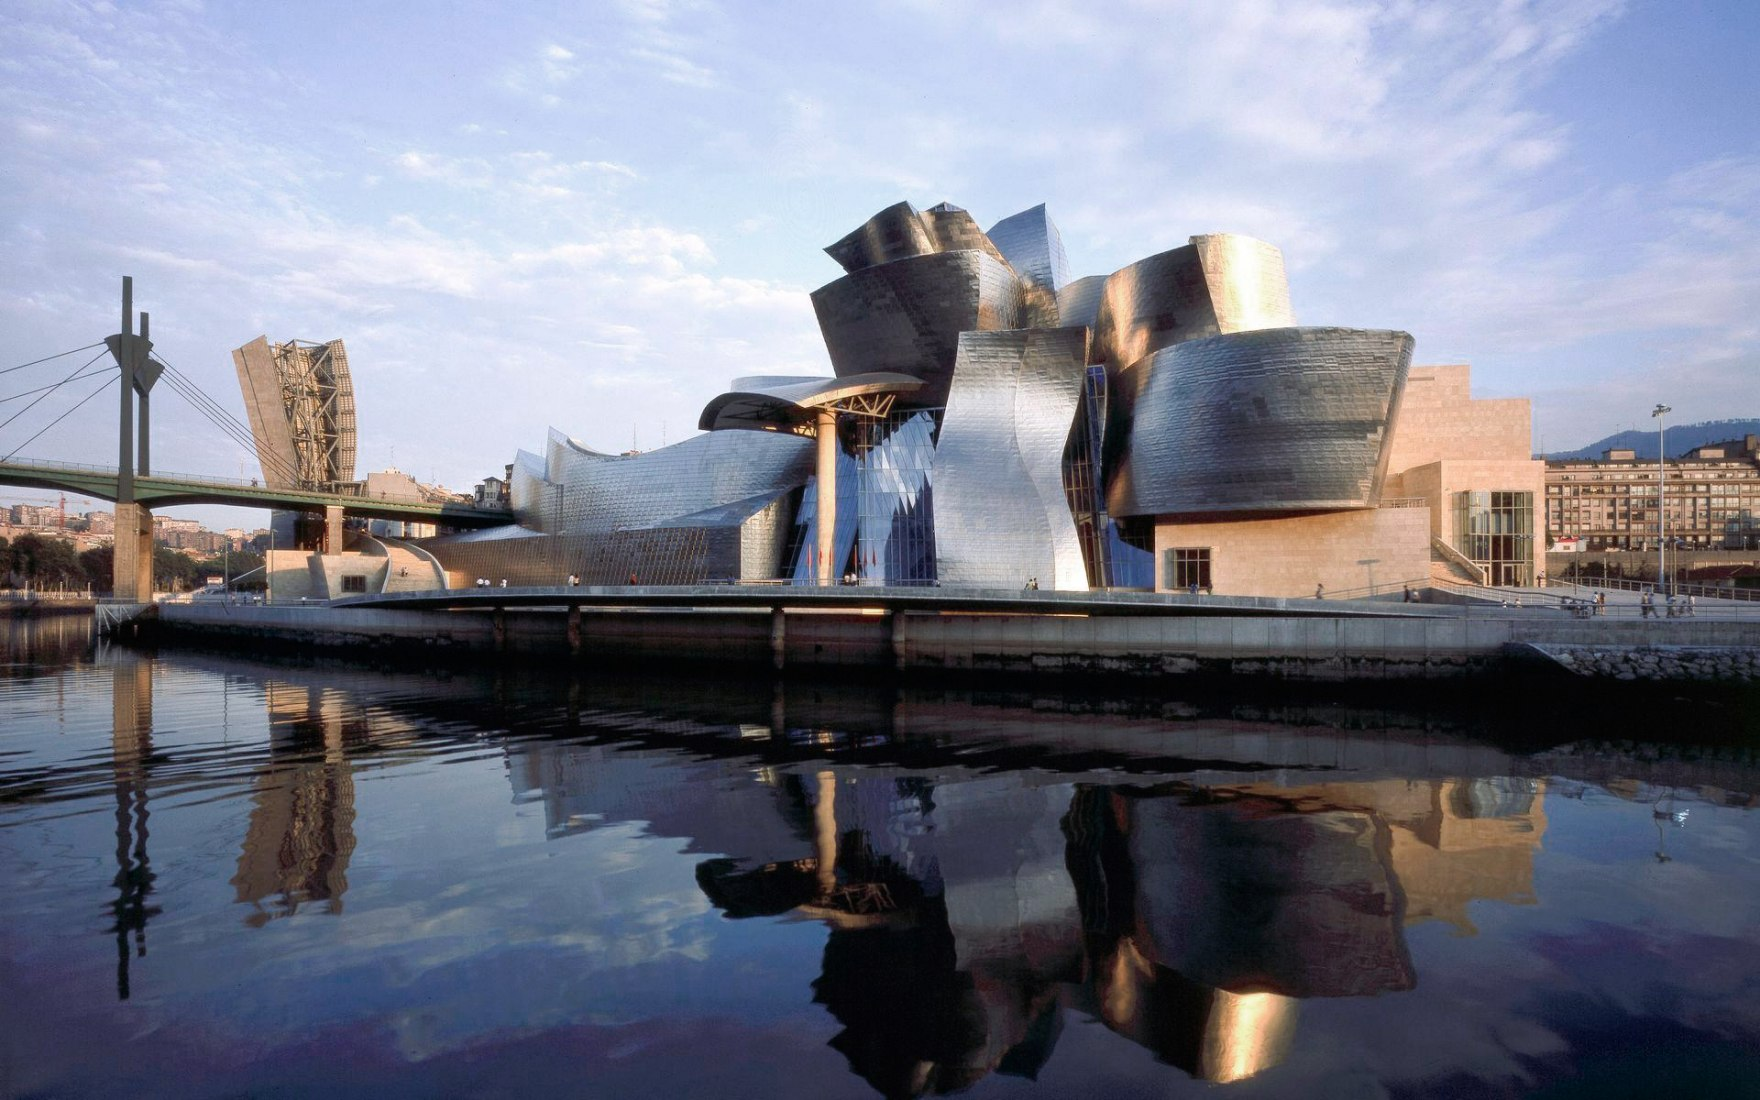 Daytime view of the Guggenheim Museum Bilbao. Image courtesy of Guggenheim Museum Bilbao.